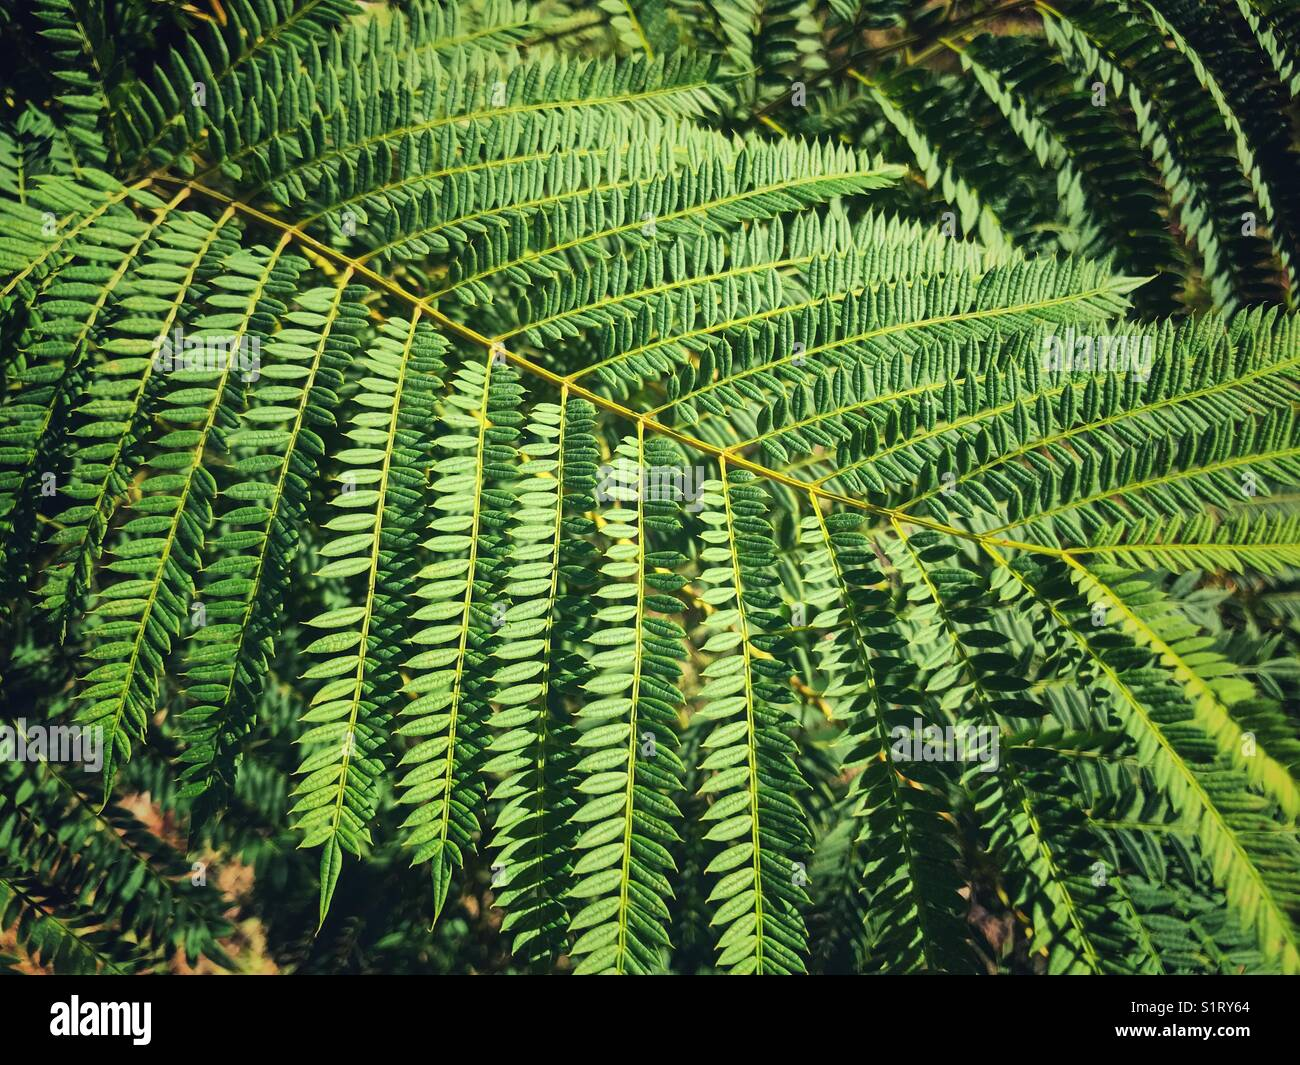 Jacaranda Leaves High Resolution Stock Photography And Images Alamy